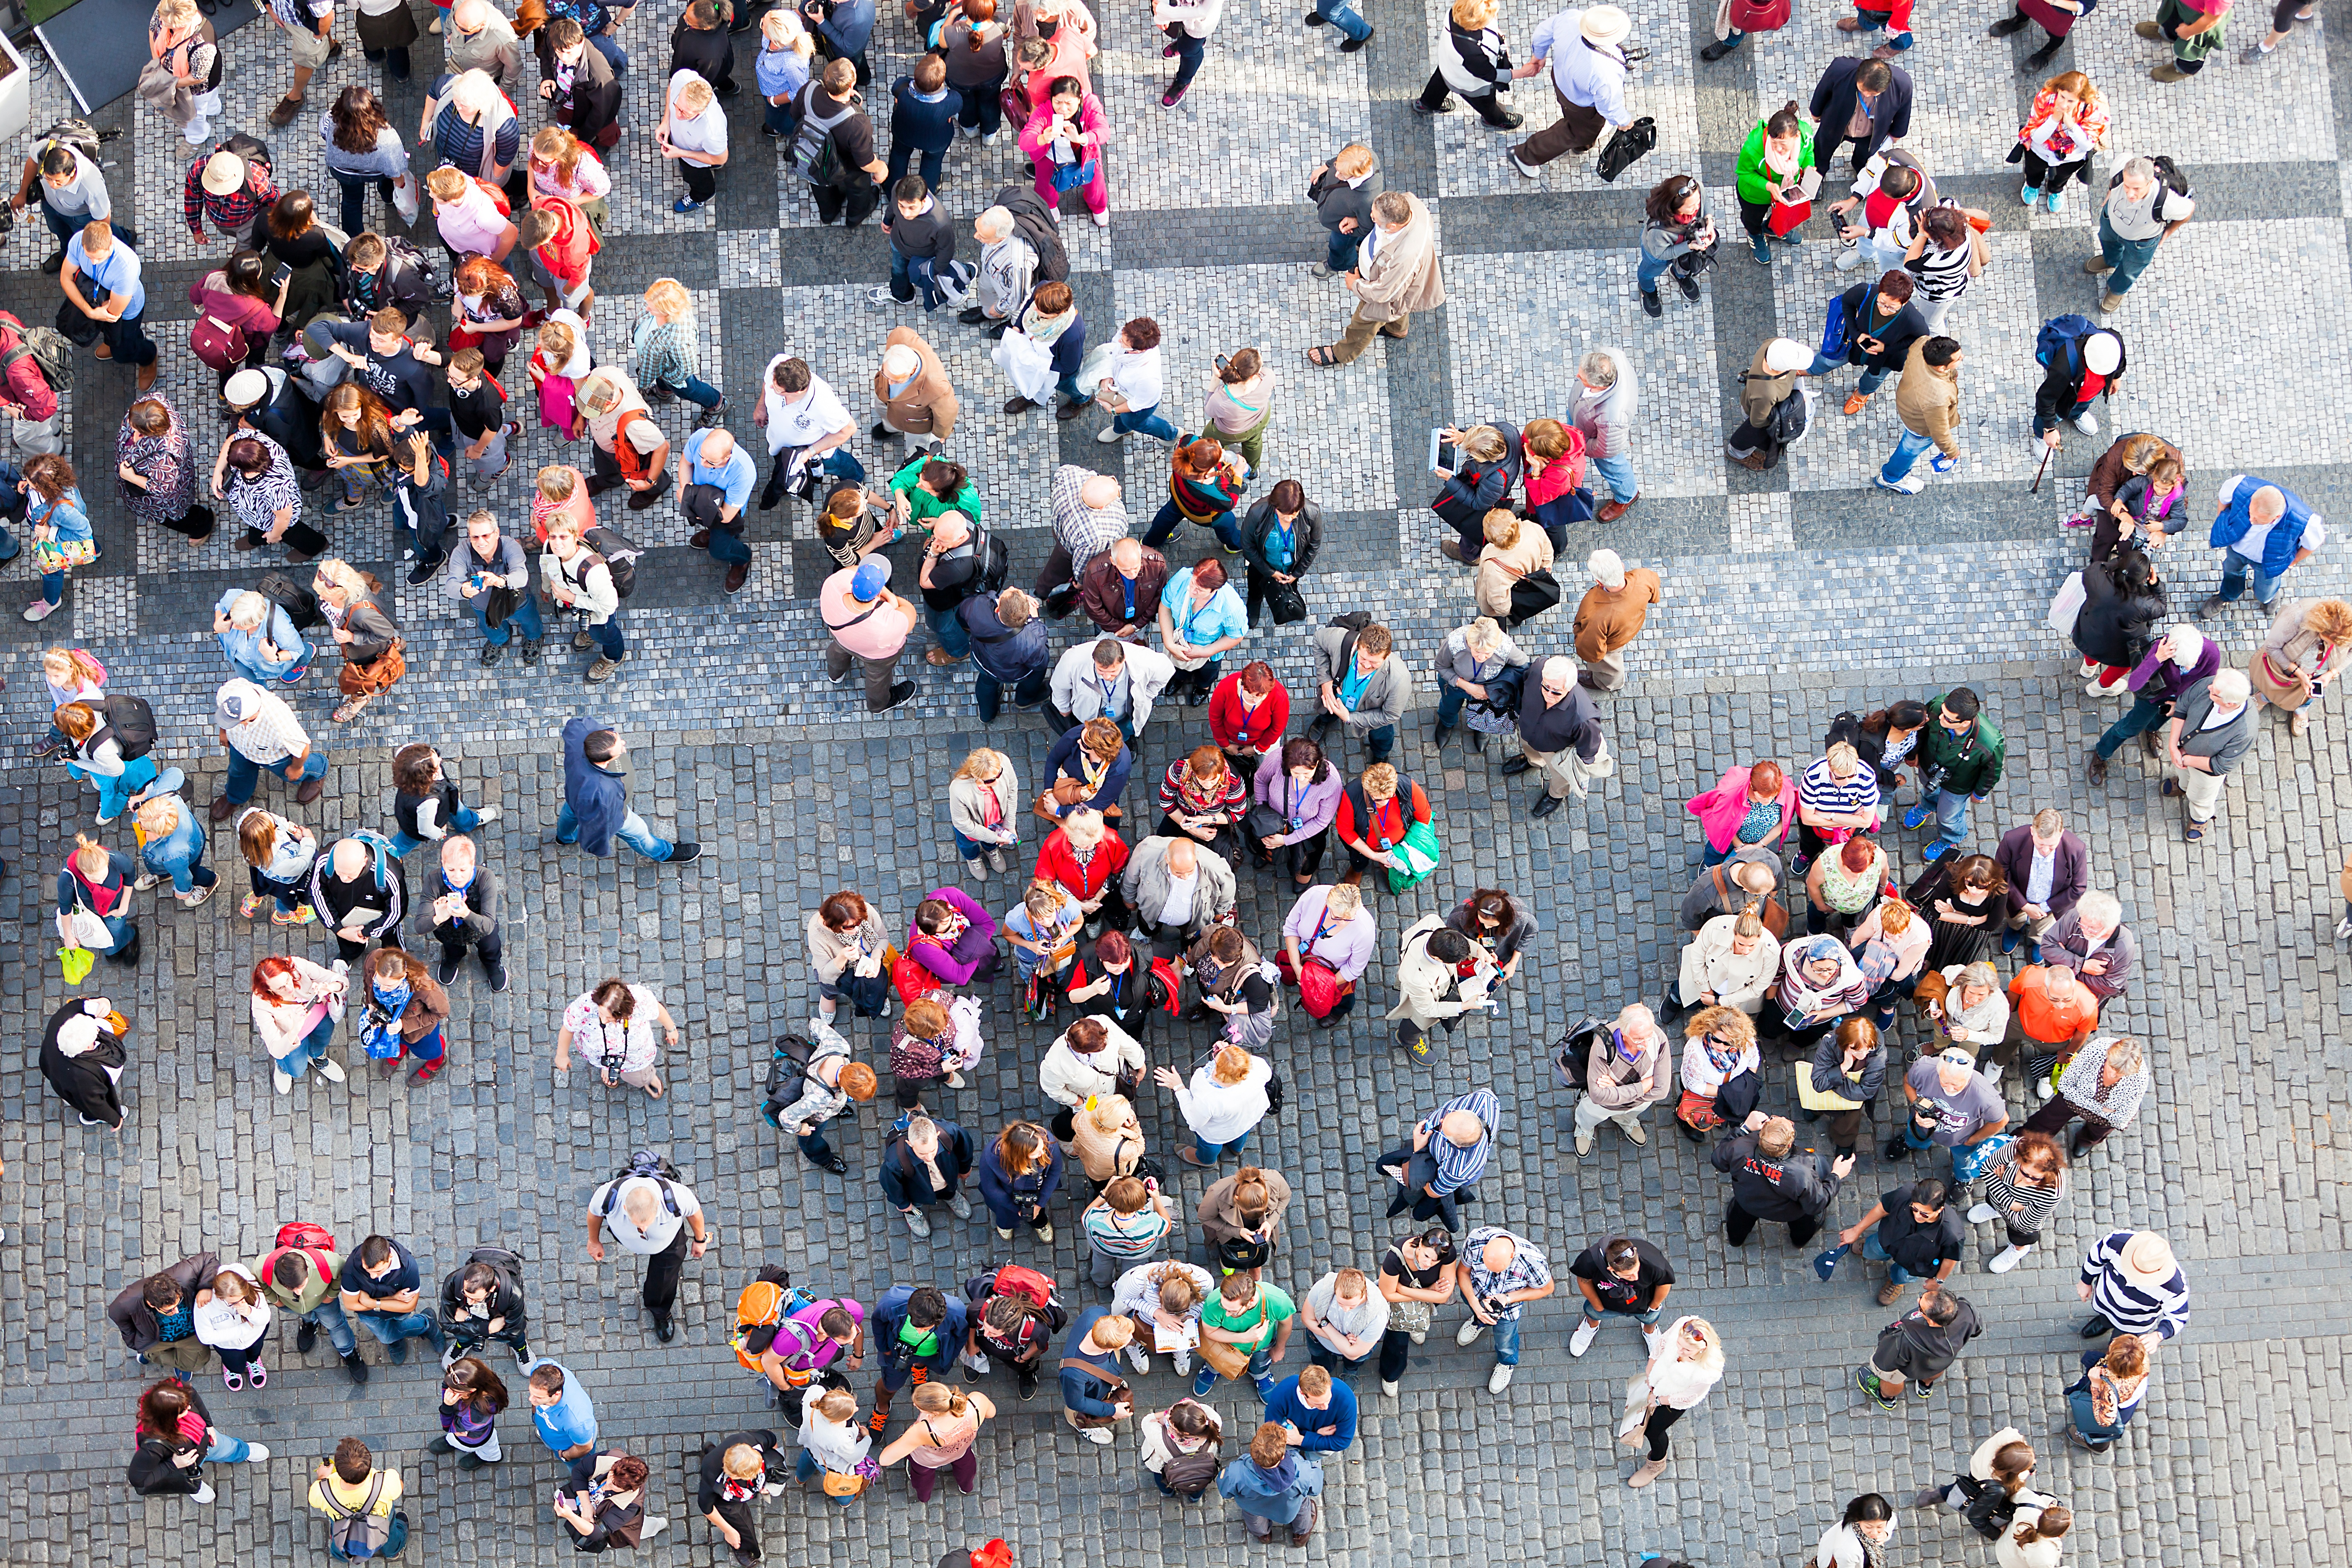 crowd of people - aerial view